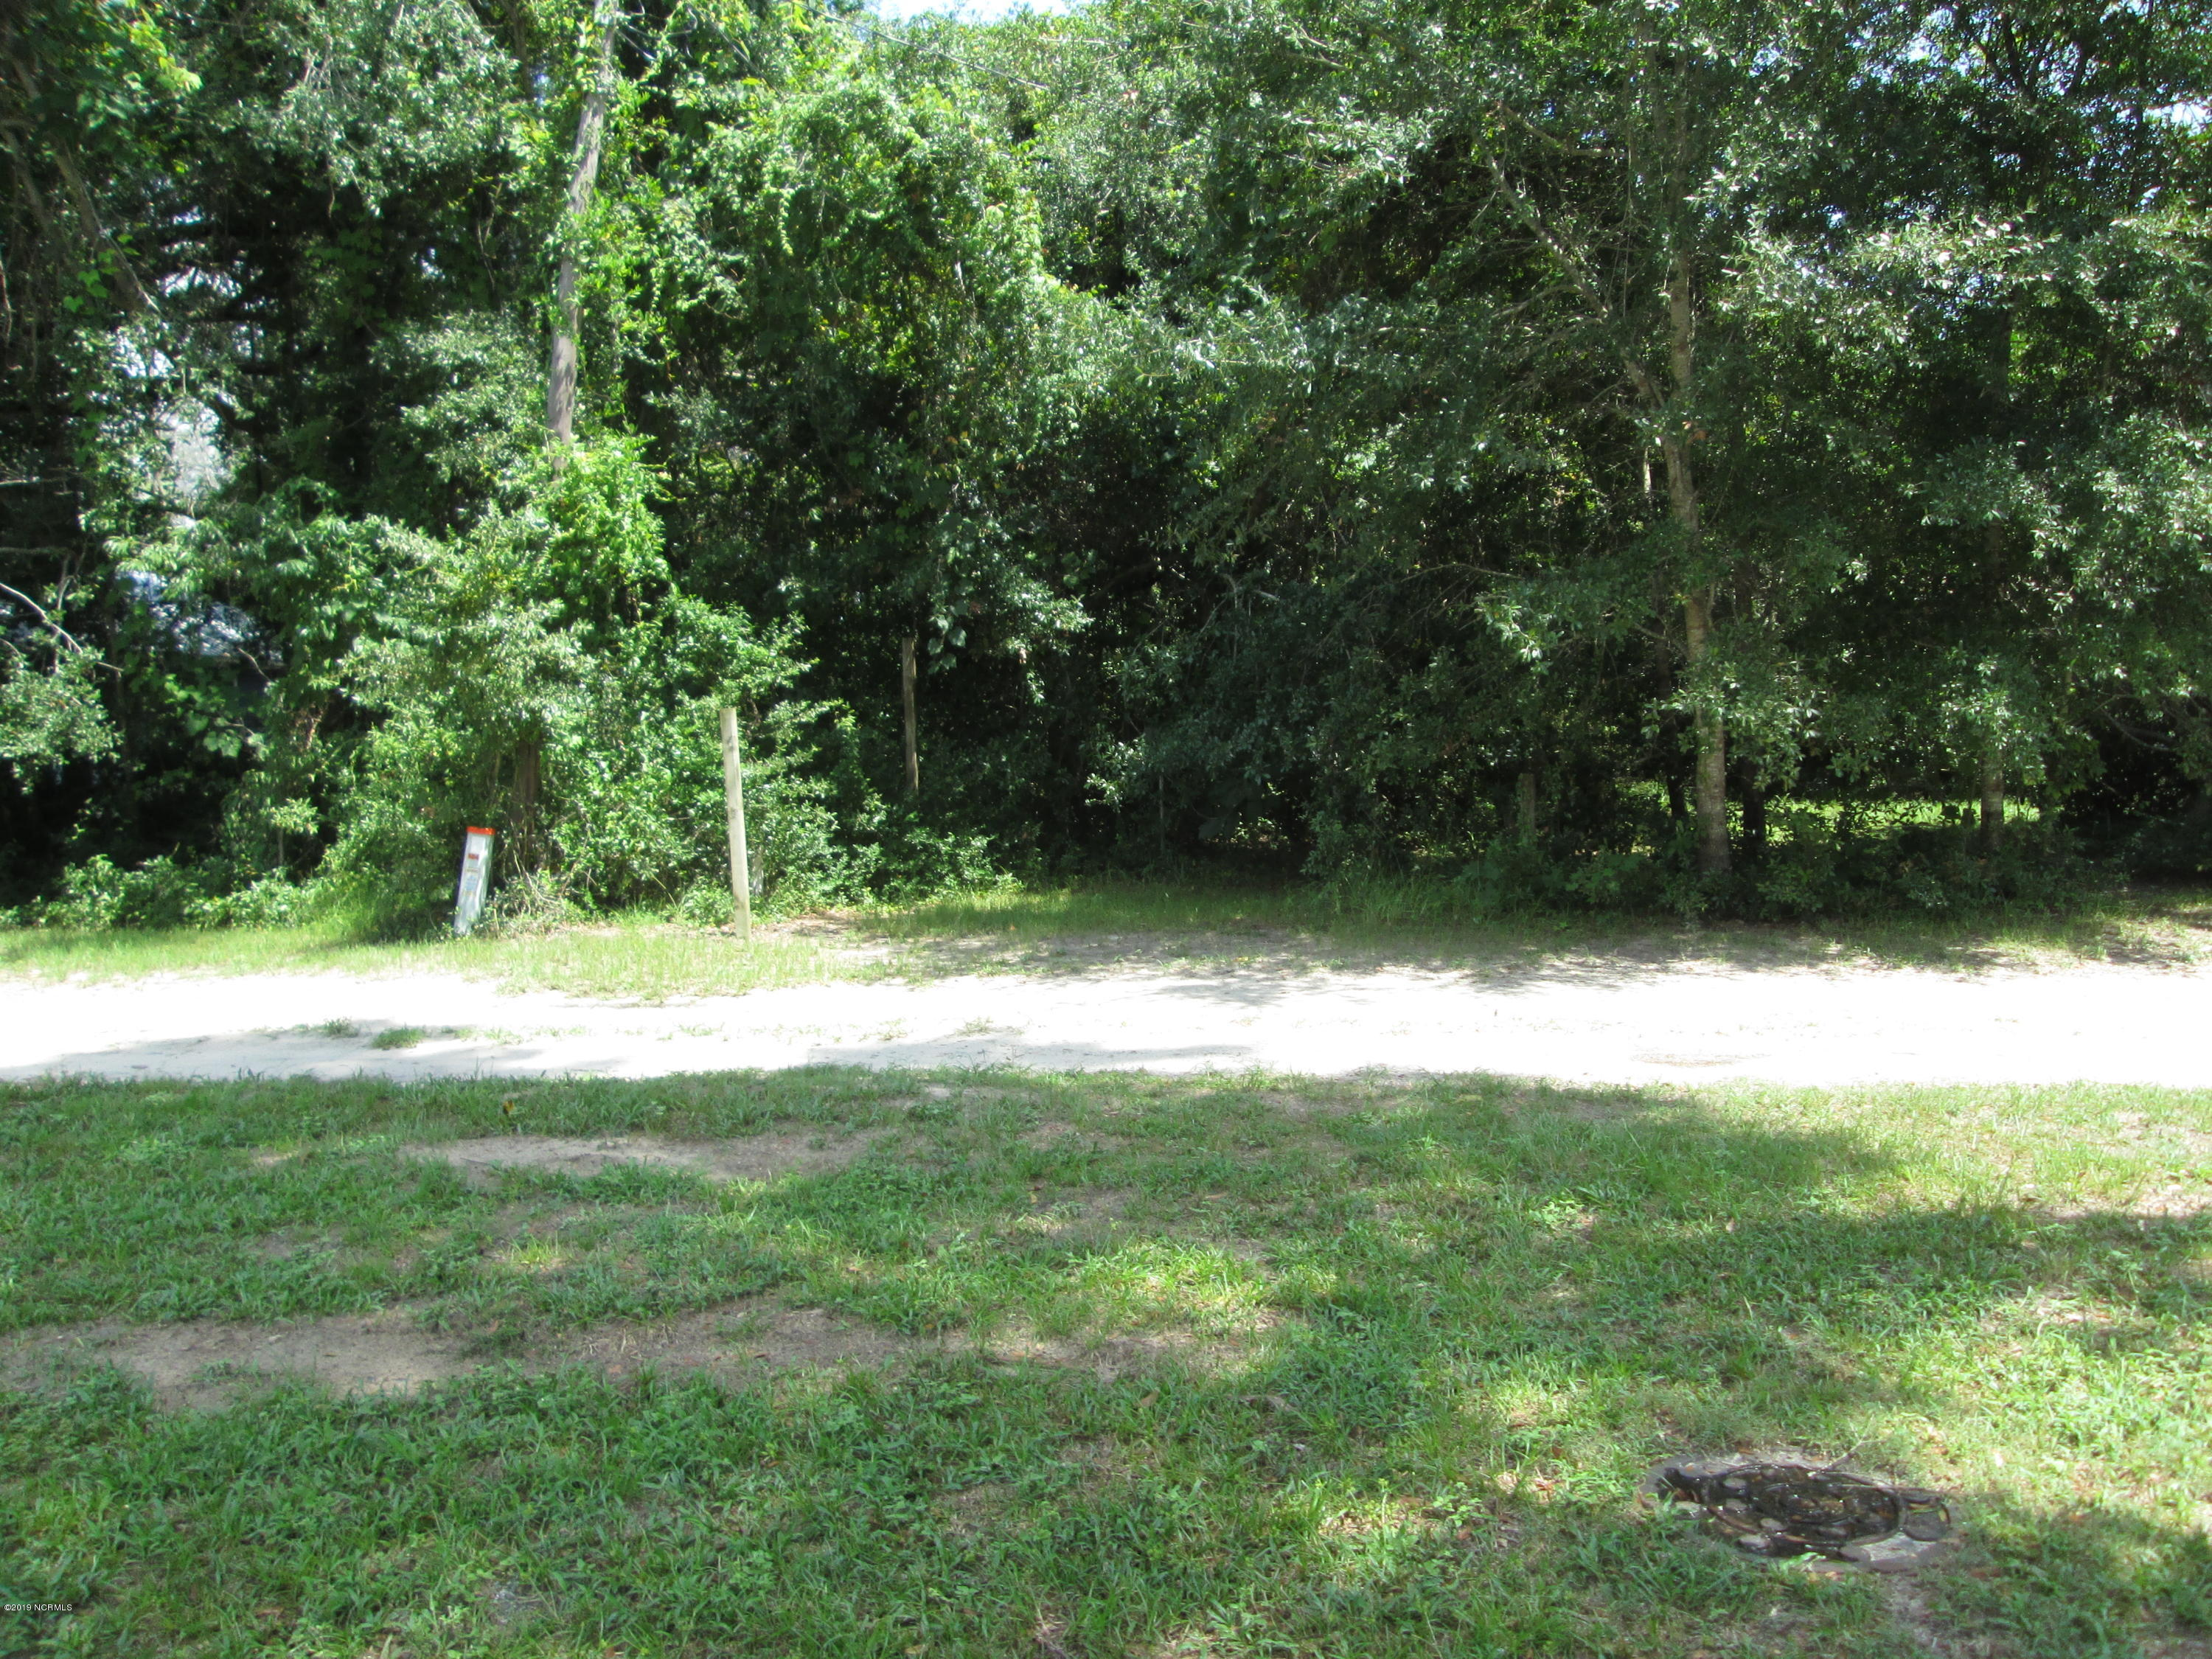 Lot 5a Hankinsville Road, Southport, North Carolina 28461, ,Undeveloped,For sale,Hankinsville,100180929